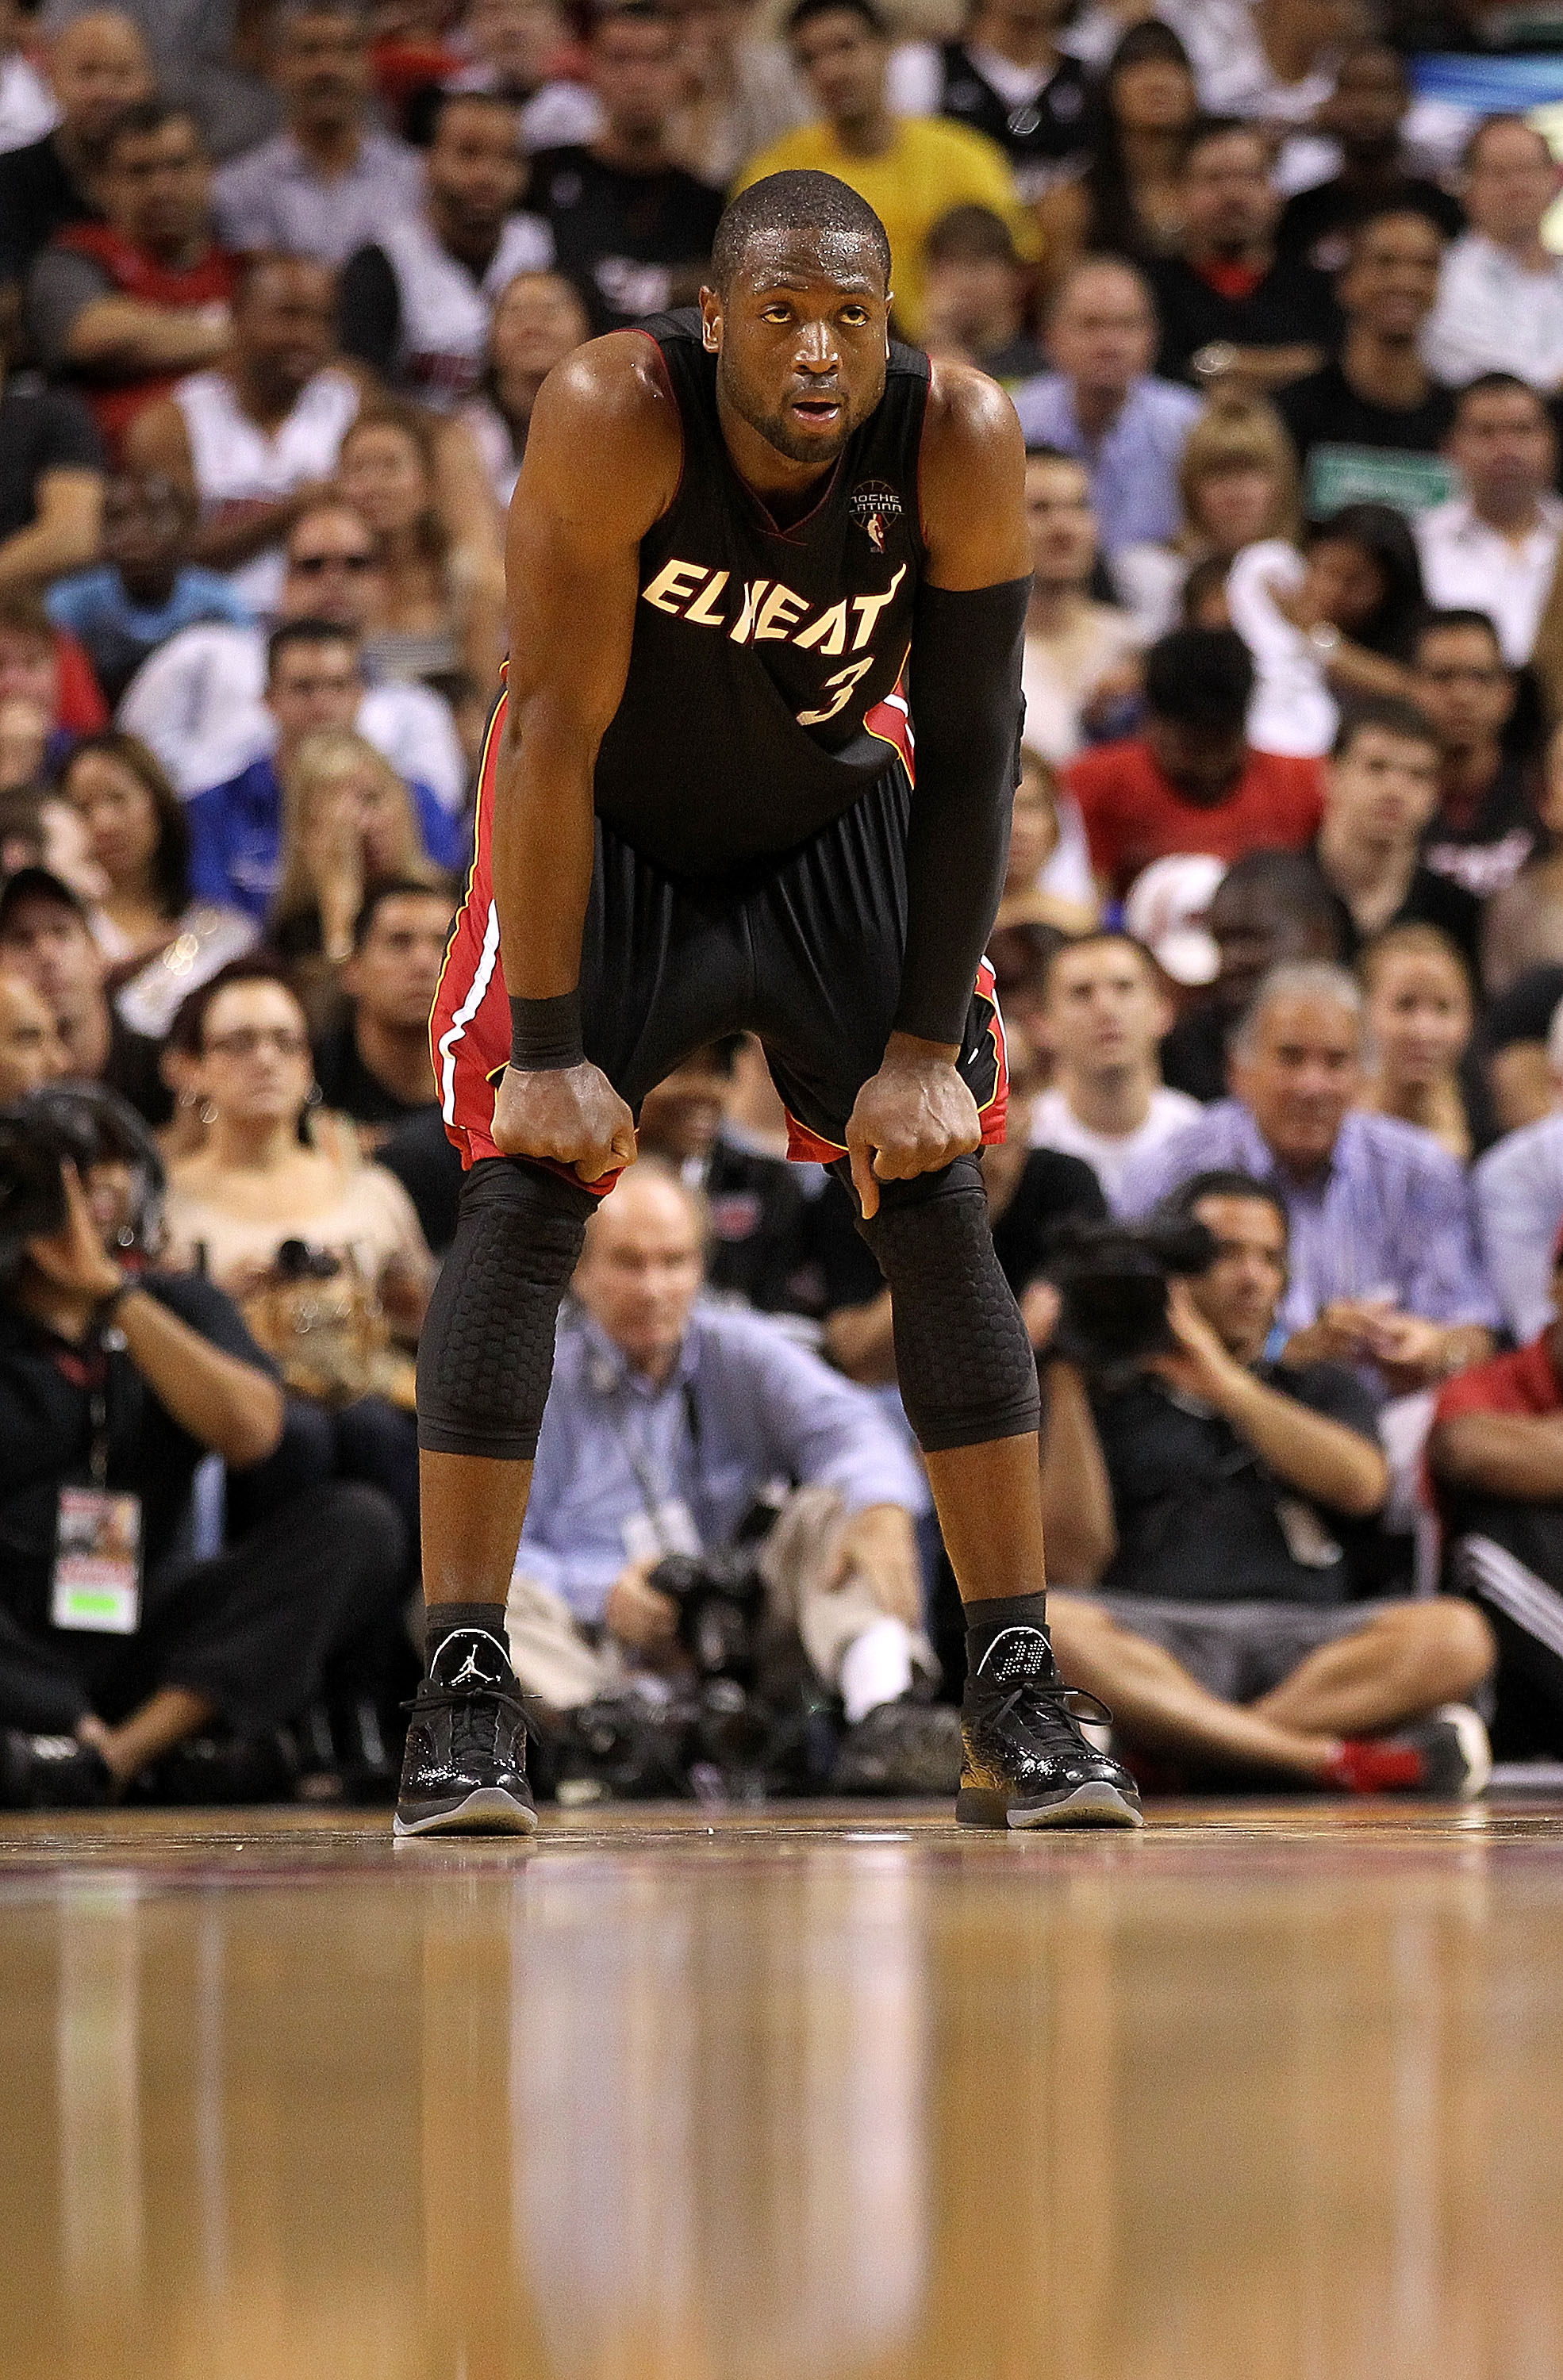 MIAMI, FL - MARCH 06:  Dwyane Wade #3 of the Miami Heat looks on during a game against the Chicago Bulls at American Airlines Arena on March 6, 2011 in Miami, Florida. NOTE TO USER: User expressly acknowledges and agrees that, by downloading and/or using